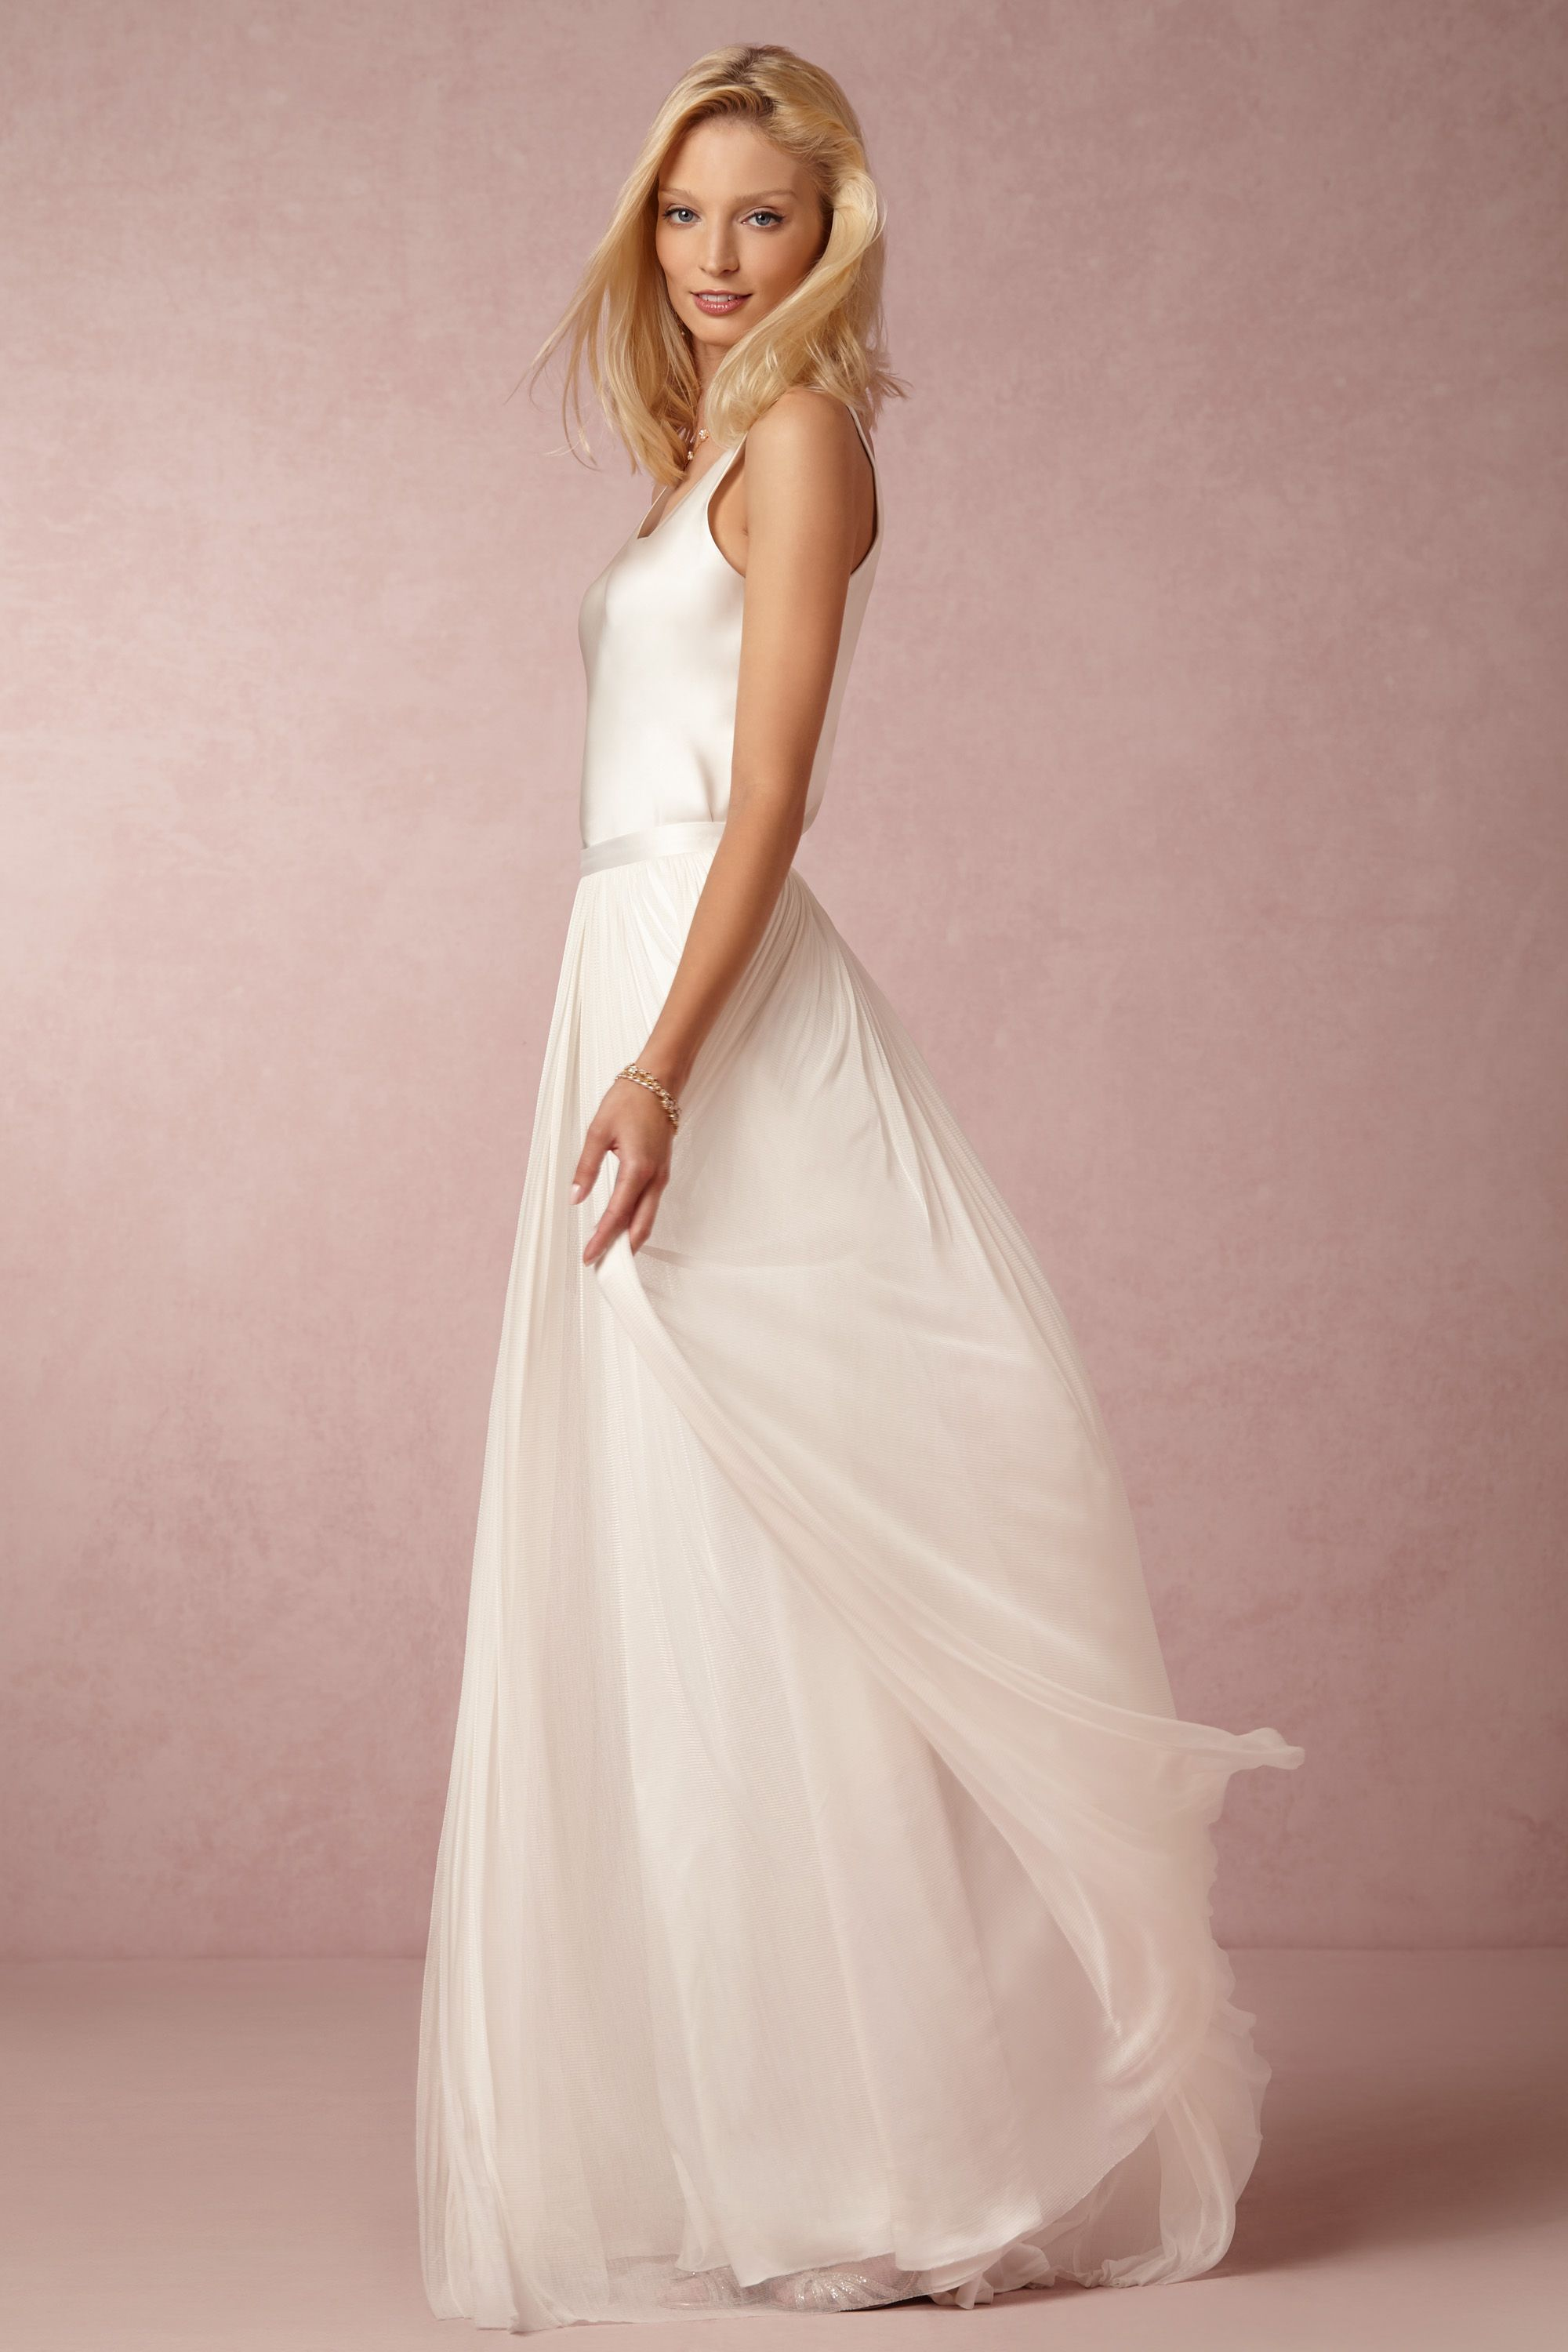 In Perpetuity Camisole & Anika Tulle Skirt from @BHLDN | Wedding ...